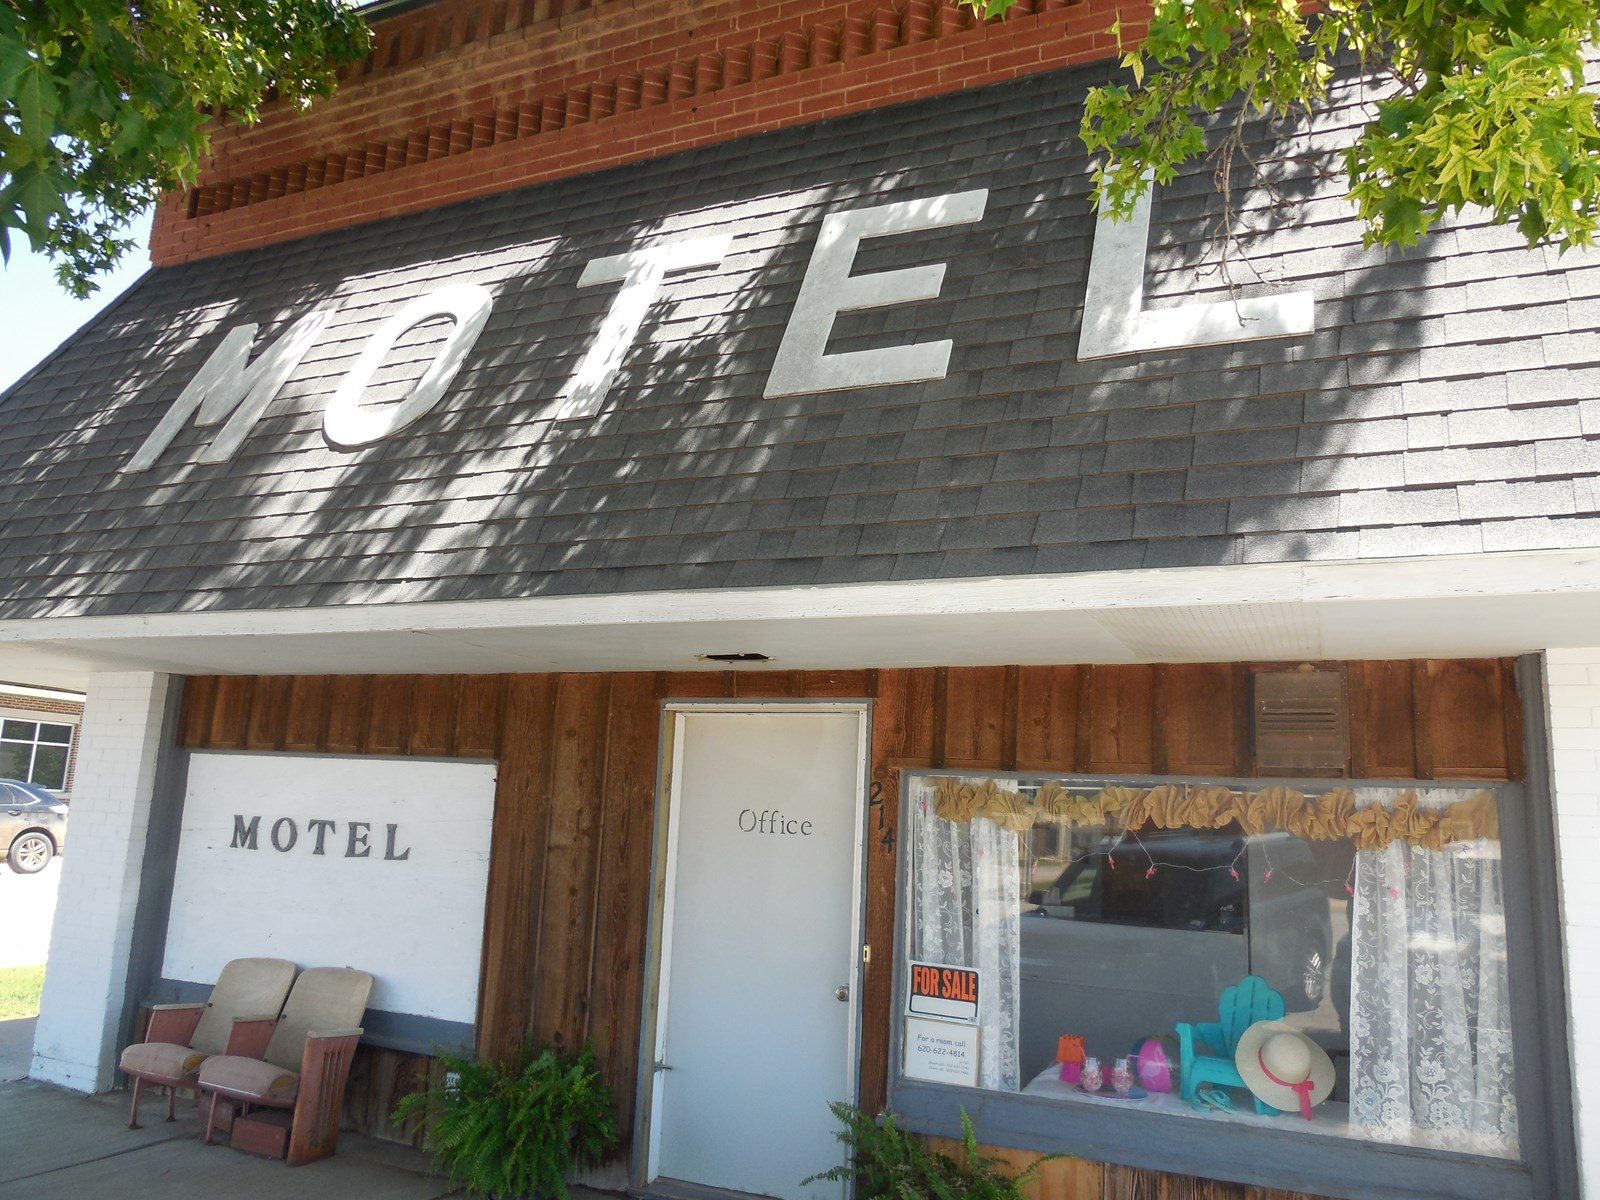 Motel – Lodge For Sale in Protection, Kansas